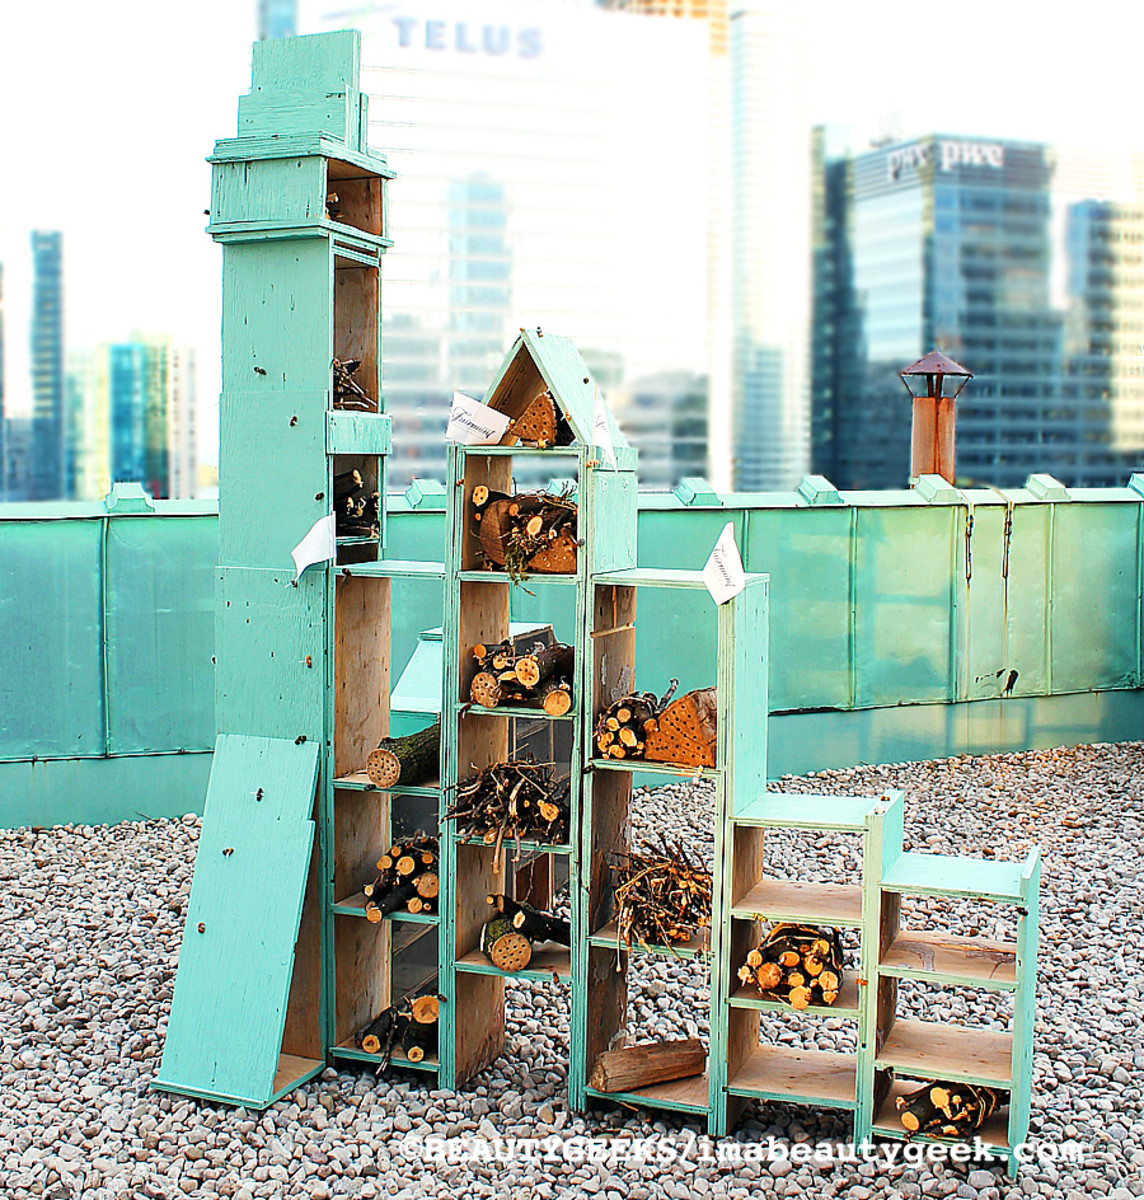 bee hotel atop the Royal York Fairmont Hotel in downtown Toronto